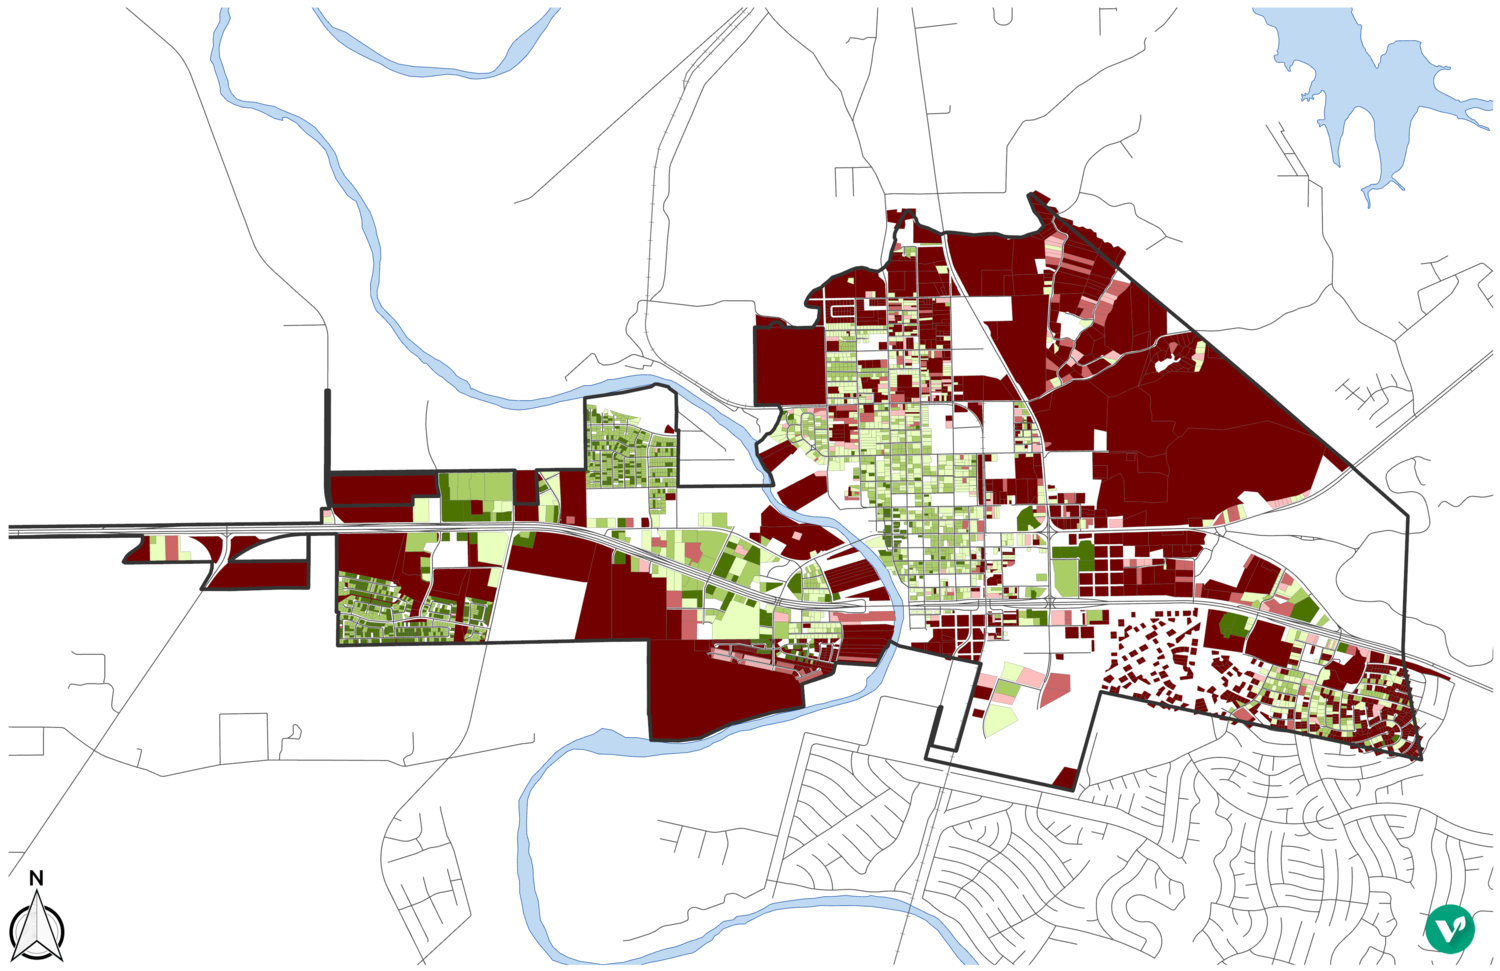 A return-on-investment (ROI) map of Bastrop, Texas. Note the amount of white space within city limits; that indicates properties that are tax-exempt and do not generate revenue for the City.